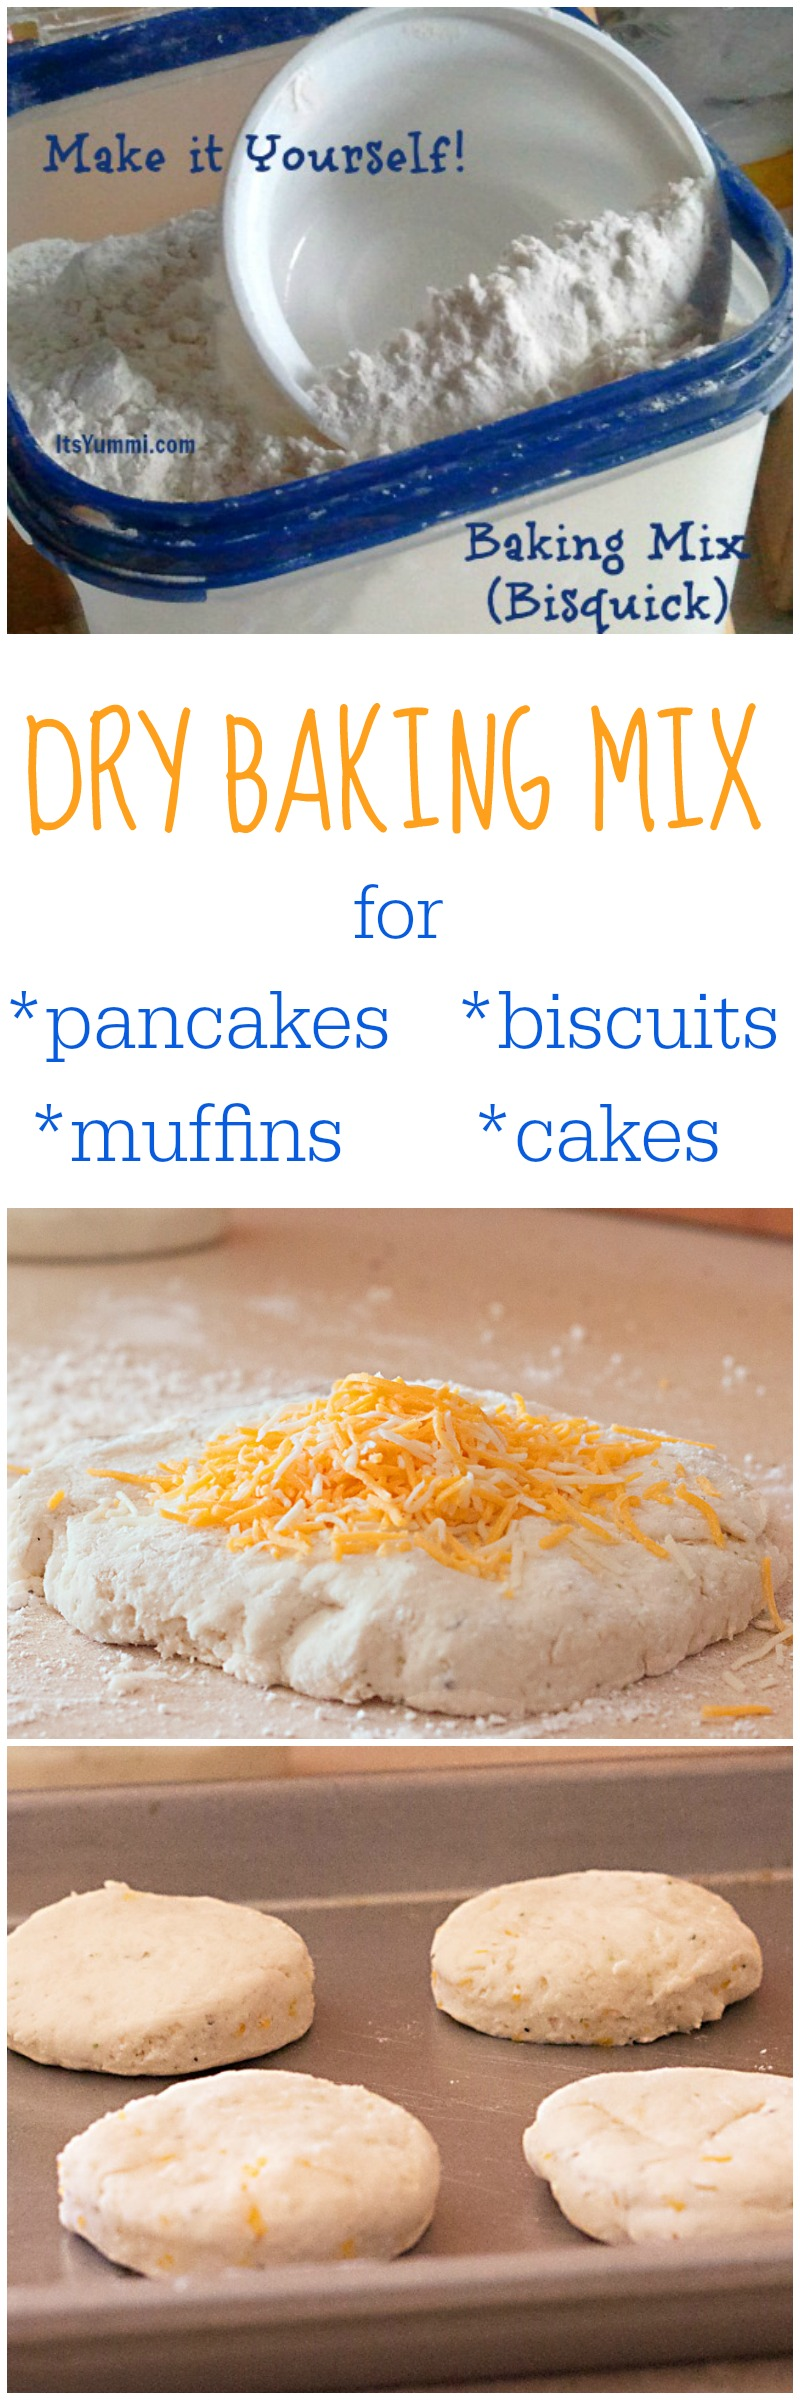 Homemade Dry Baking Mix (DIY Bisquick) is less expensive and better for you! Make homemade biscuits, pancakes, muffins, cakes, and more!